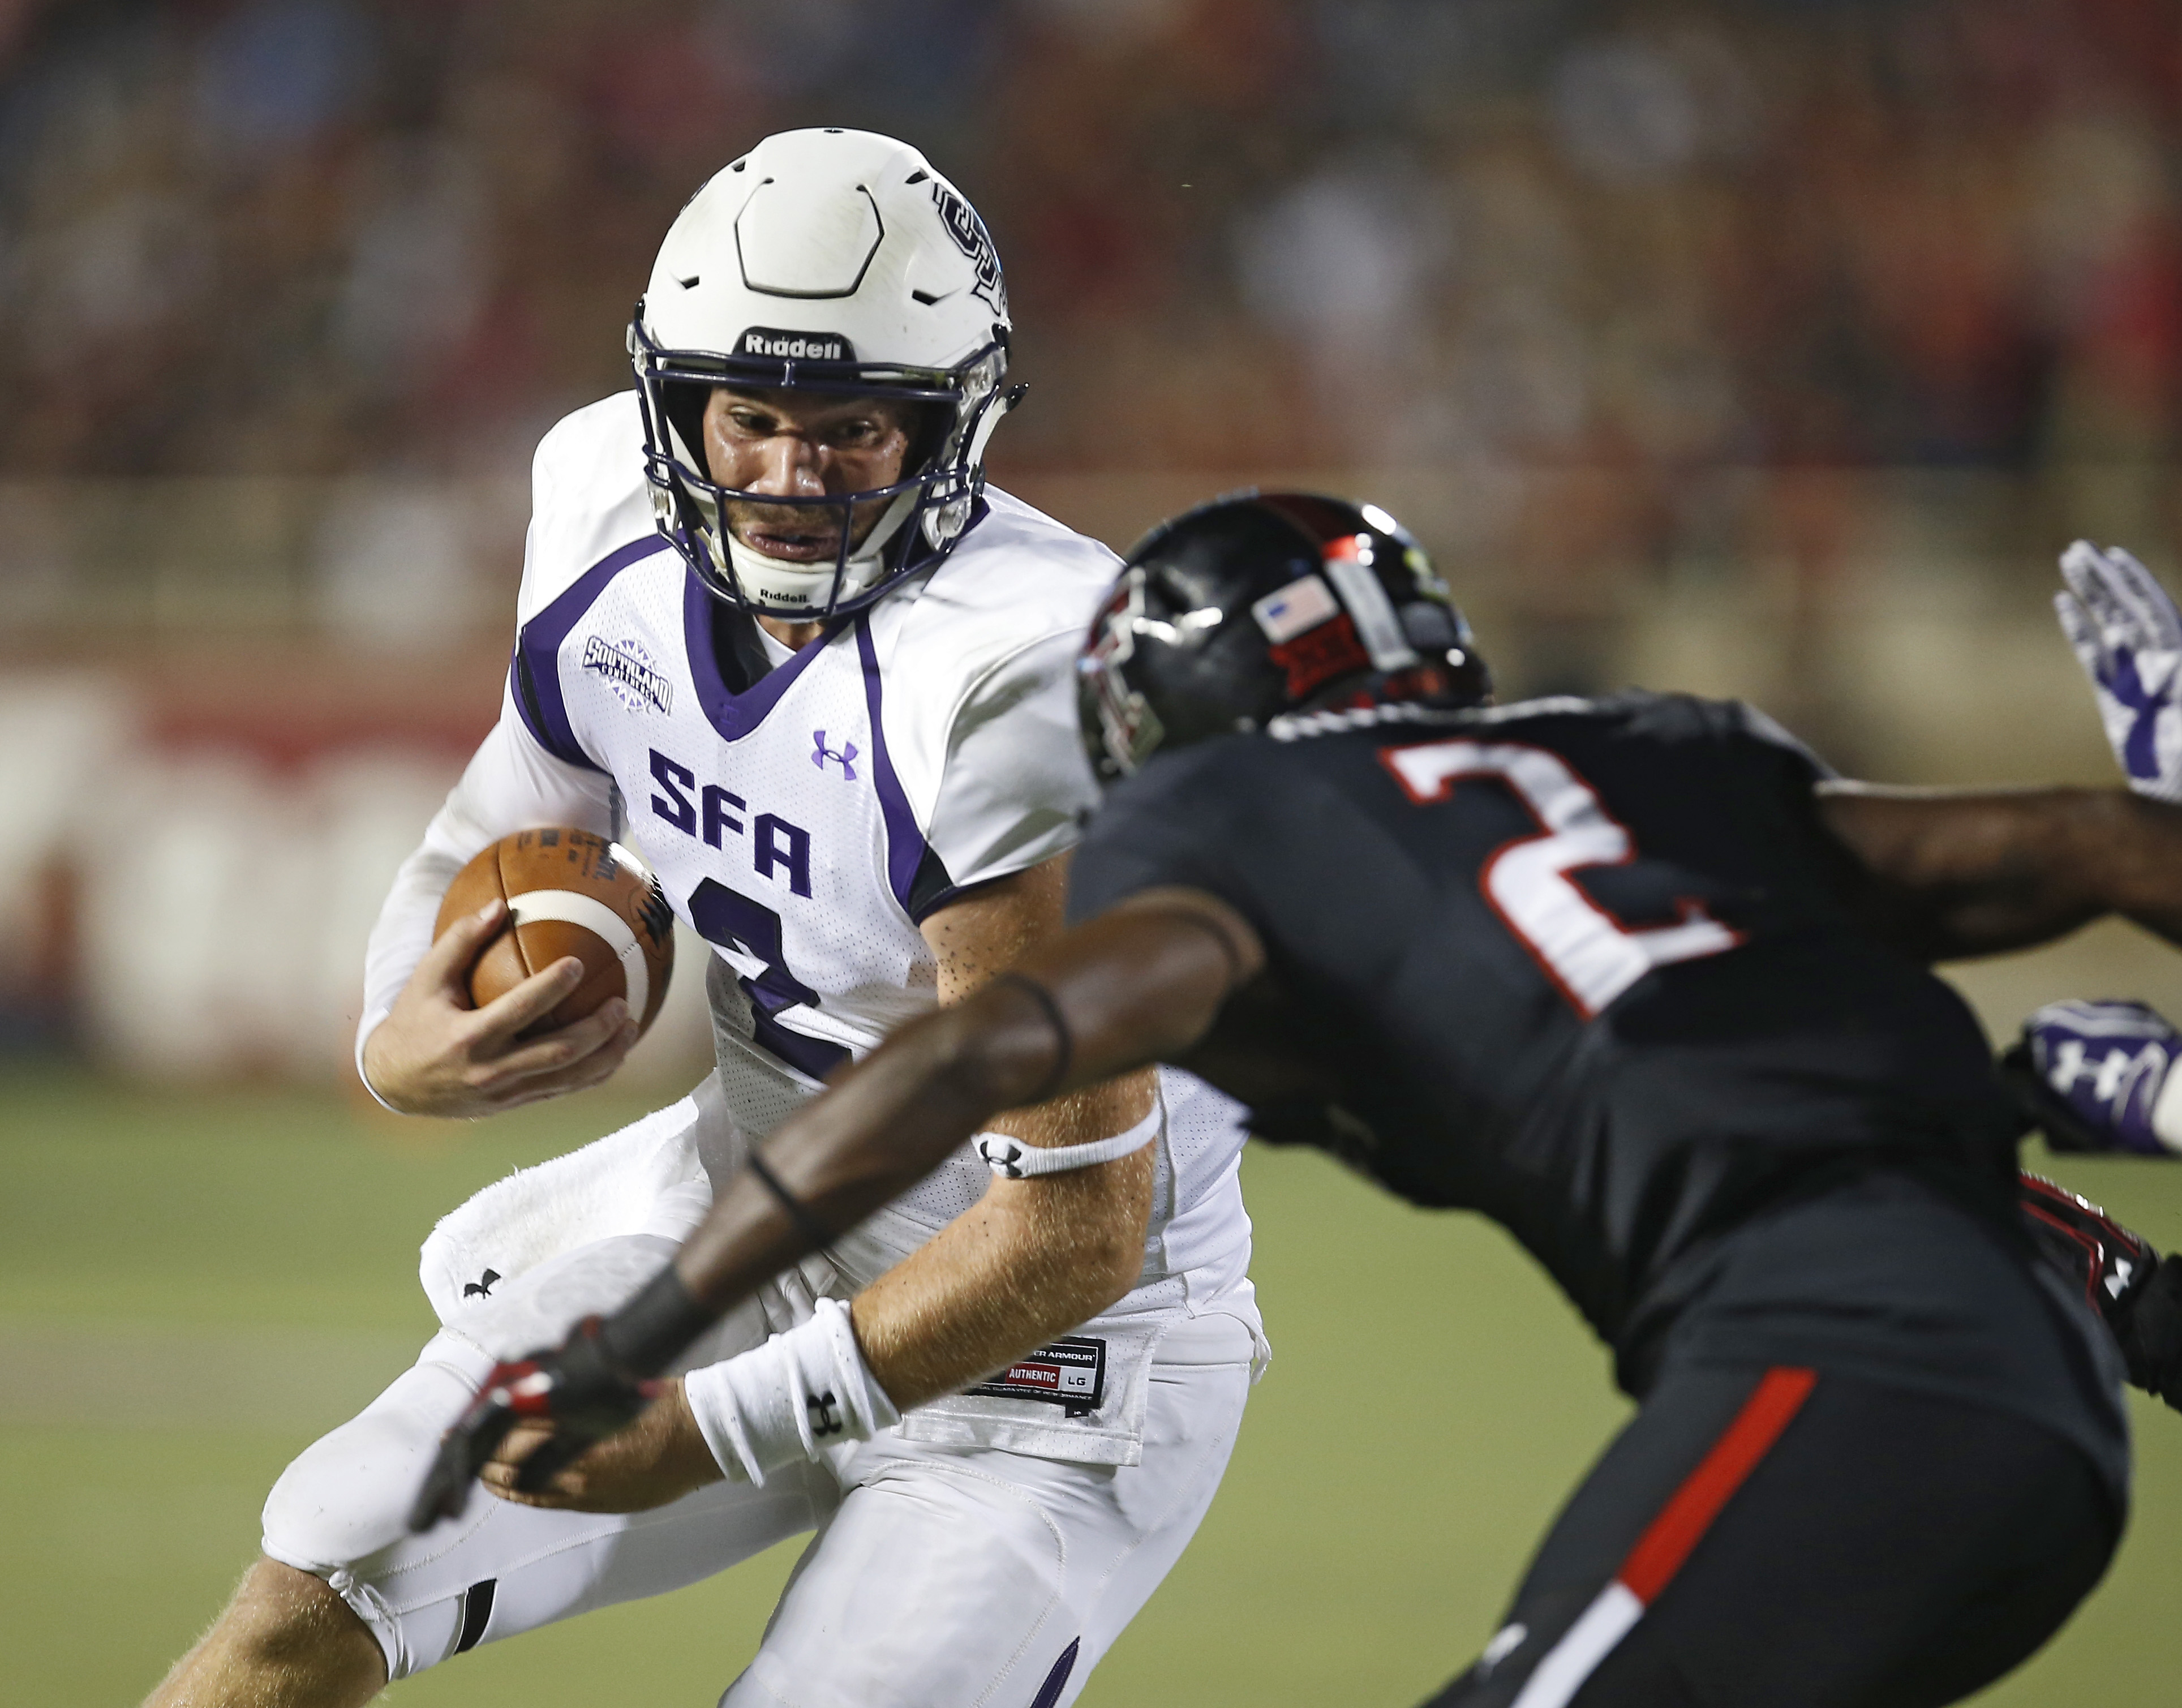 Stephen F. Austin's Zach Conque, left, tries to get around Texas Tech's Tevin Madison during an NCAA college football game Saturday, Sept. 3, 2016, in Lubbock, Texas. (Brad Tollefson/Lubbock Avalanche-Journal via AP)